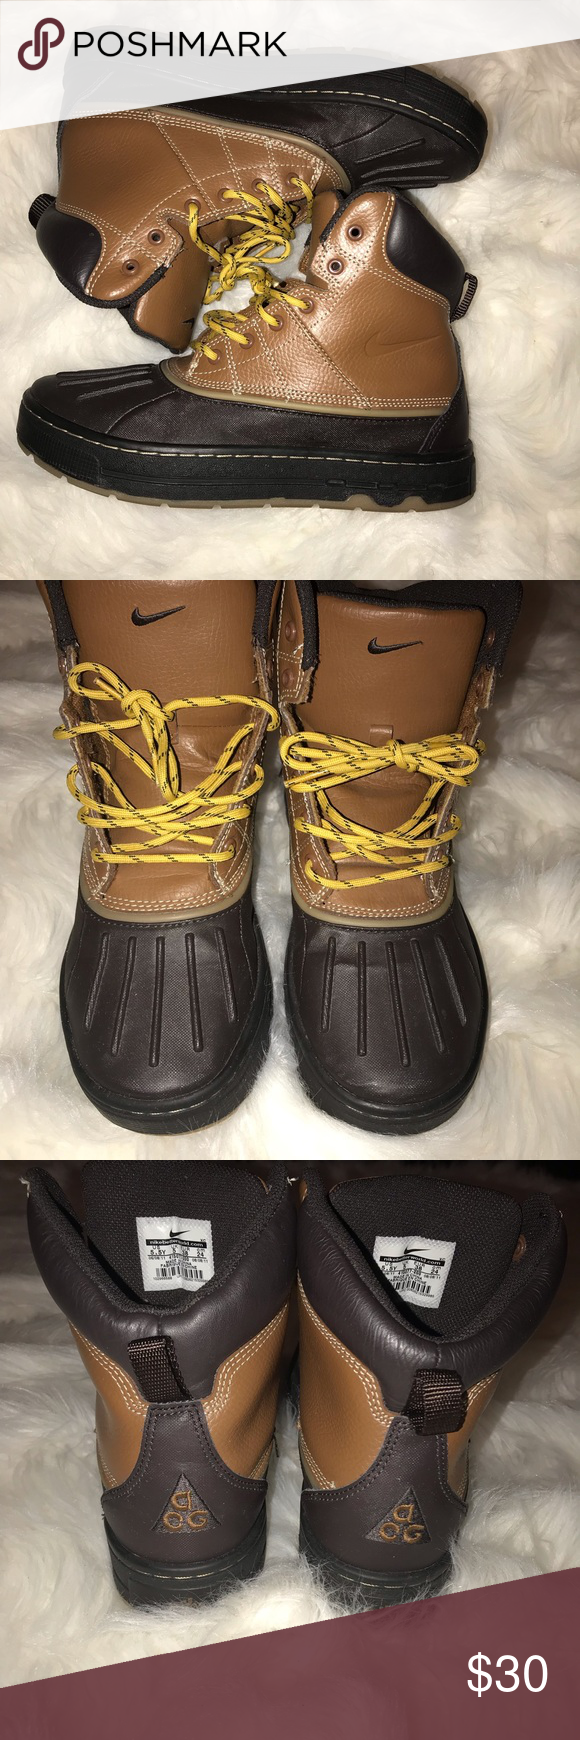 separation shoes 91f9c 4be87 Nike acg 🌟Nike acg boots. Boys size 5.5. Boots are in good condition.  Minor signs of wear. See photos for details. These boots are good for rain  or snow ...